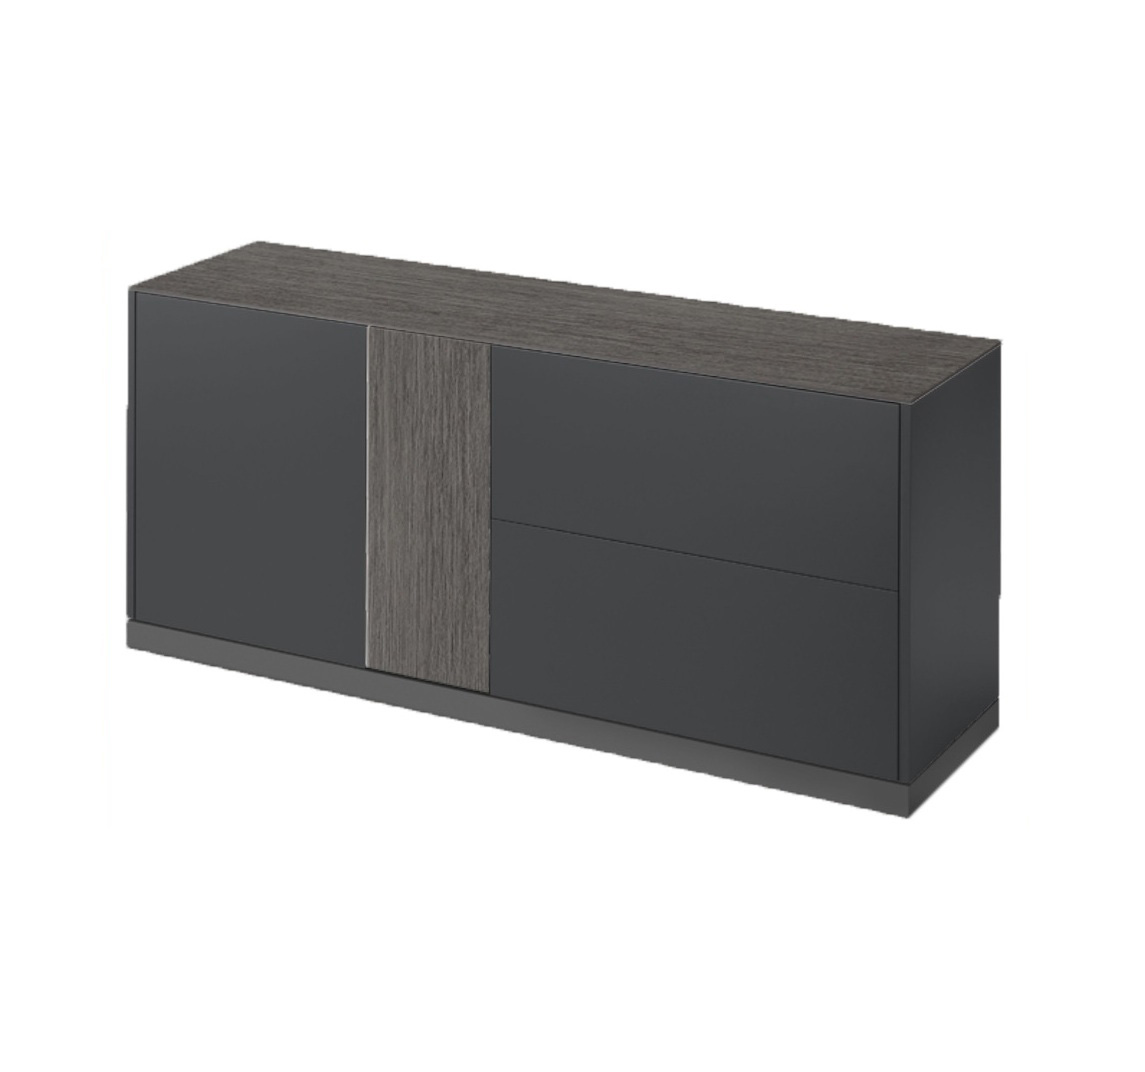 LINEA 185 LARGE SIDEBOARD, DARK GREY MATT LACQUERED BODY WITH DARK GREY OBSIDIAN TOP AND DOOR -0